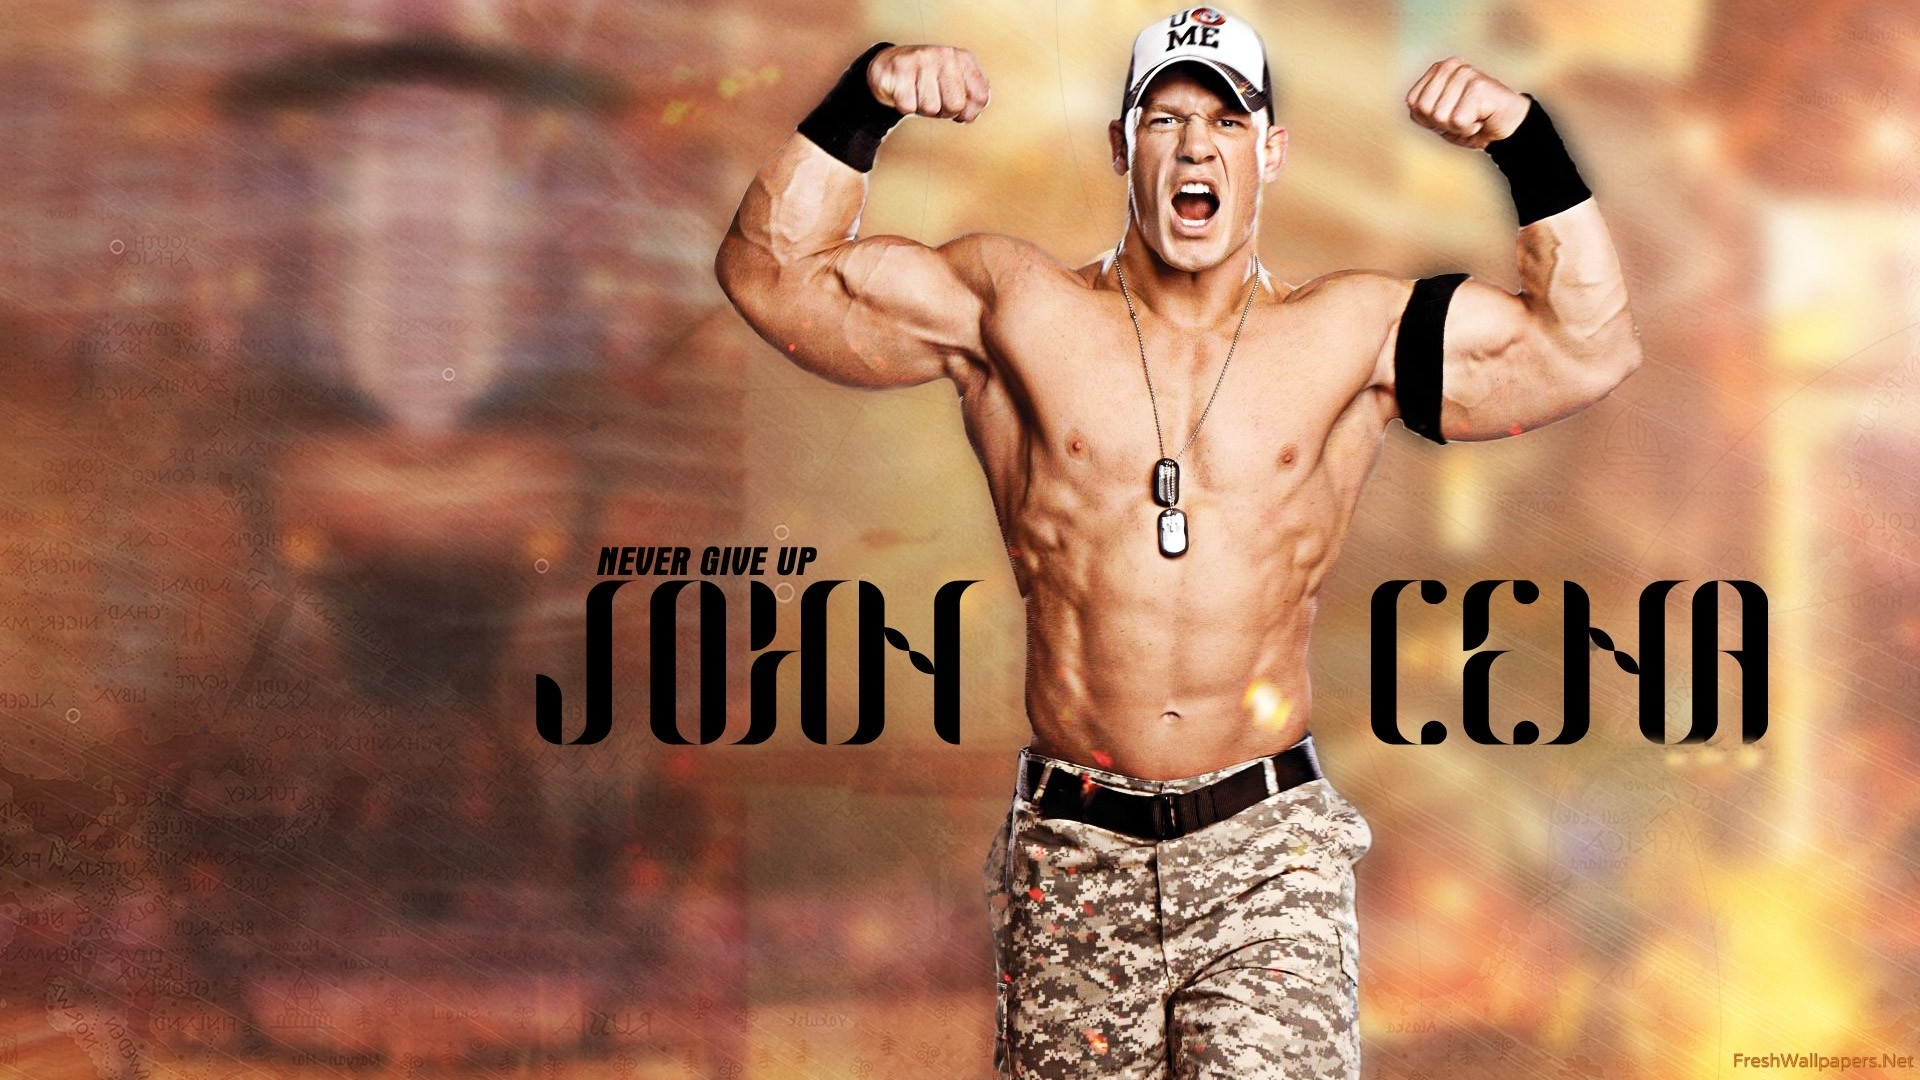 2015 john cena never give up wallpapers | freshwallpapers